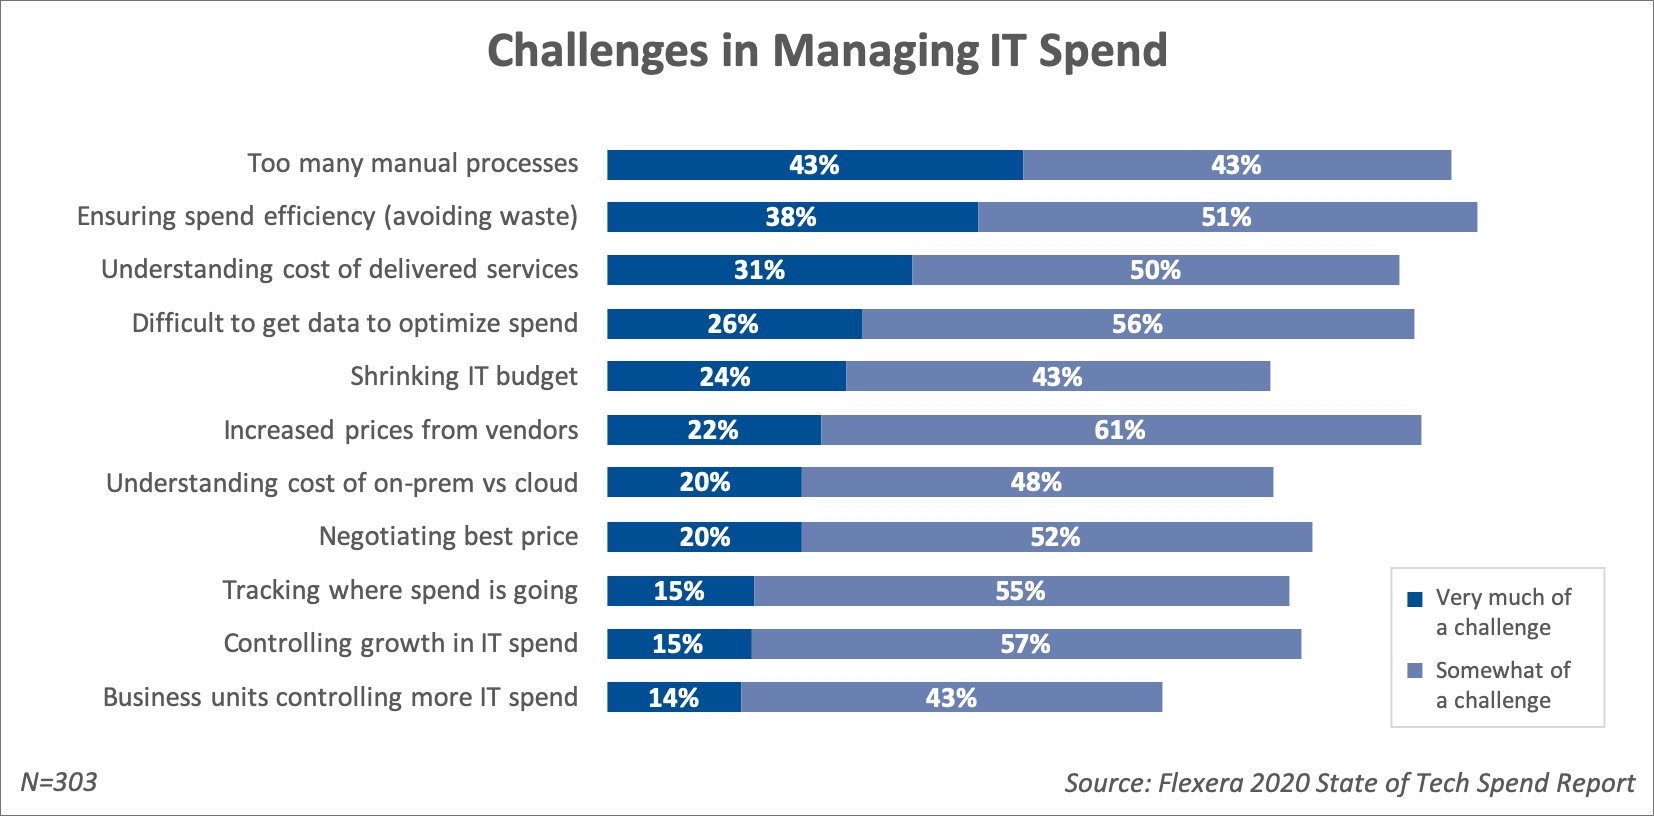 Top challenges in managing spend are manual processes, avoiding waste, understanding the cost of delivered services, and getting the data needed to optimize spend